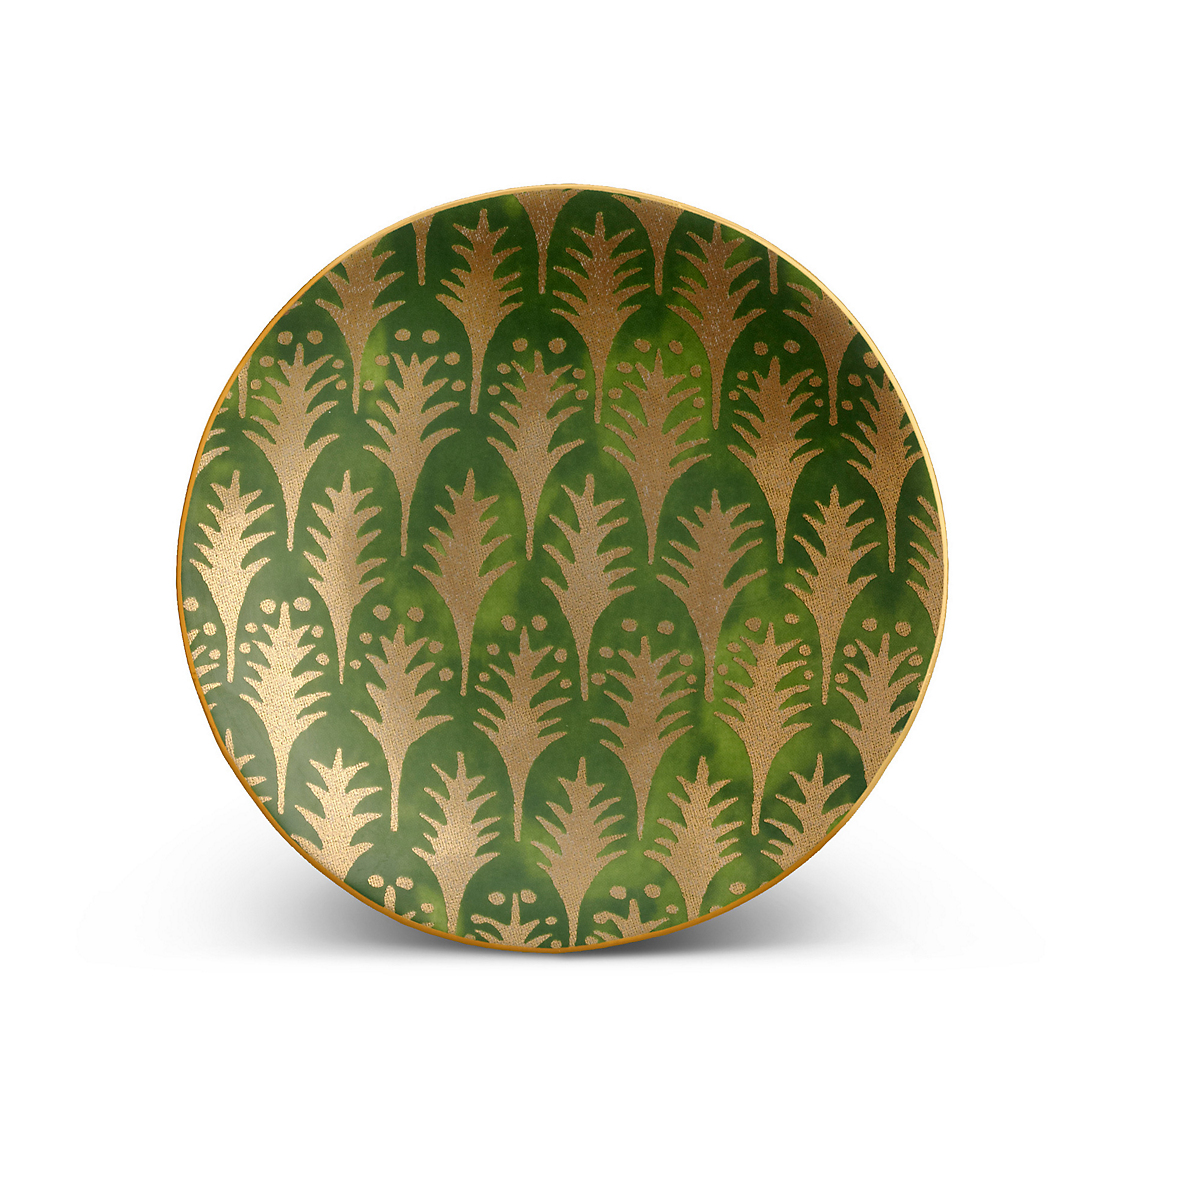 L 39 objet fortuny piumette green canape plates set of 4 for What are canape plates